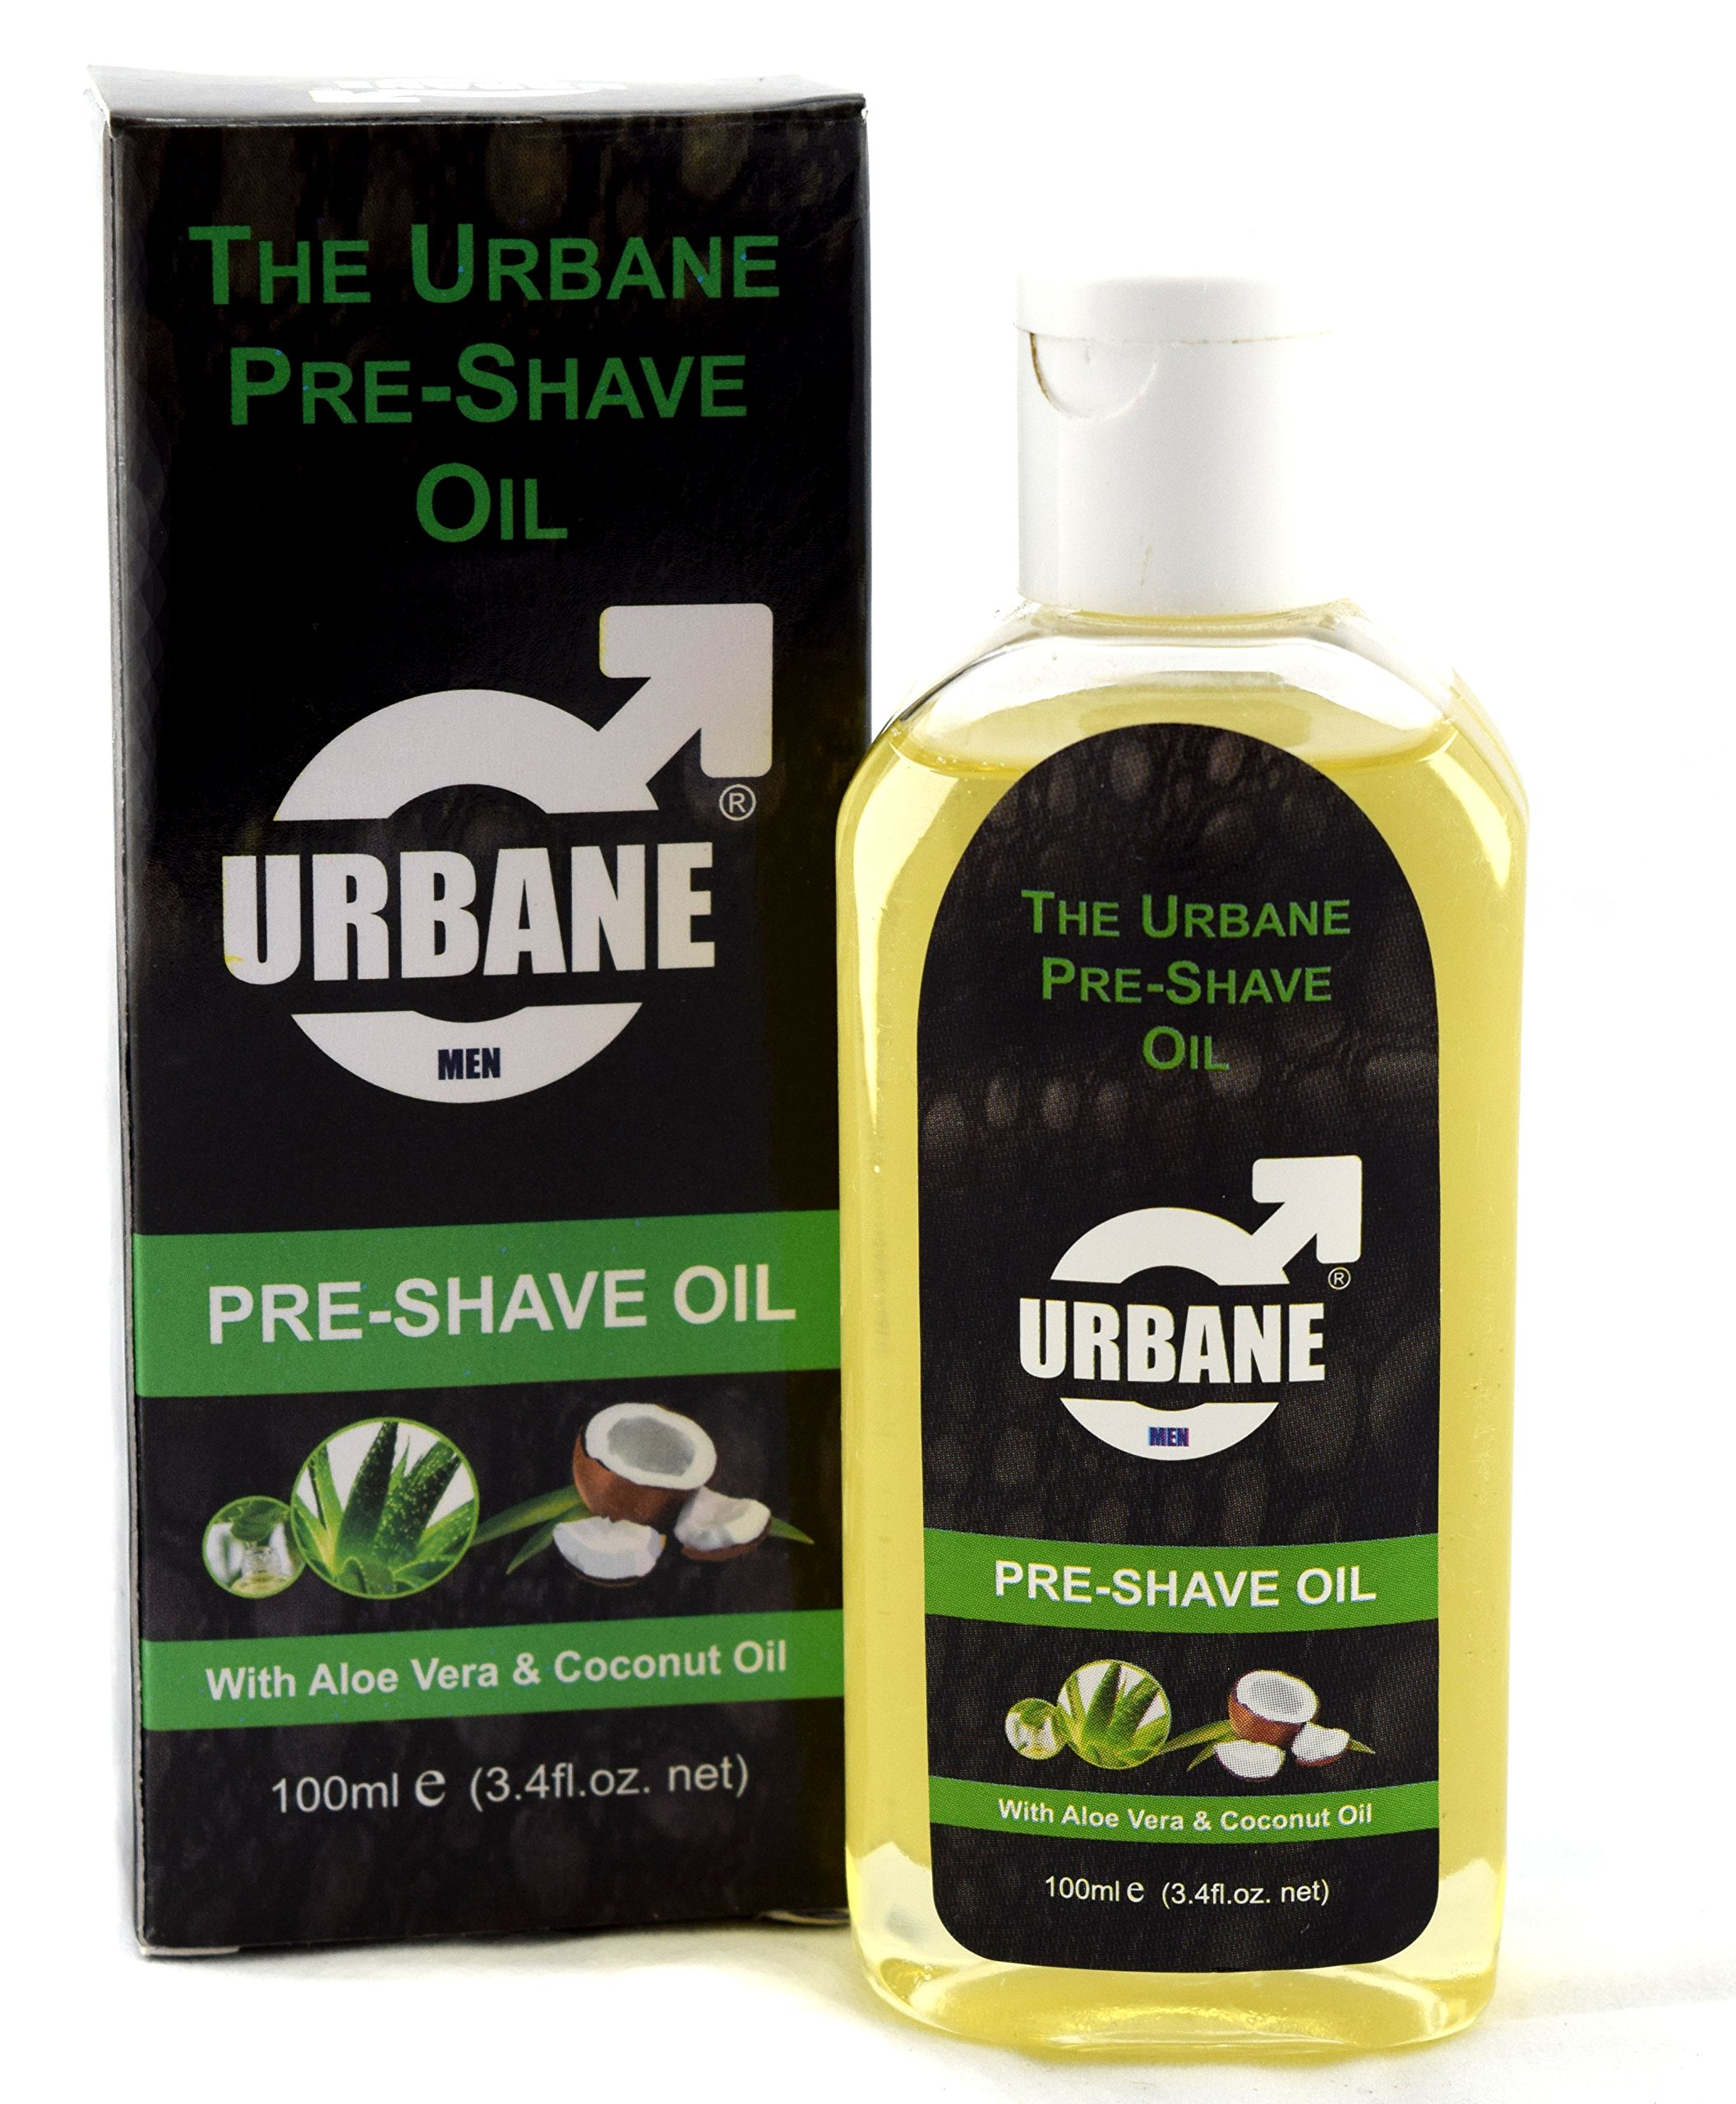 Urbane Men Pre-Shave Oil for Manual & Electric 100ml (Aloe Vera & Coconut  Oil) - Buy Online in Brunei. | urbane men Products in Brunei - See Prices,  Reviews and Free Delivery